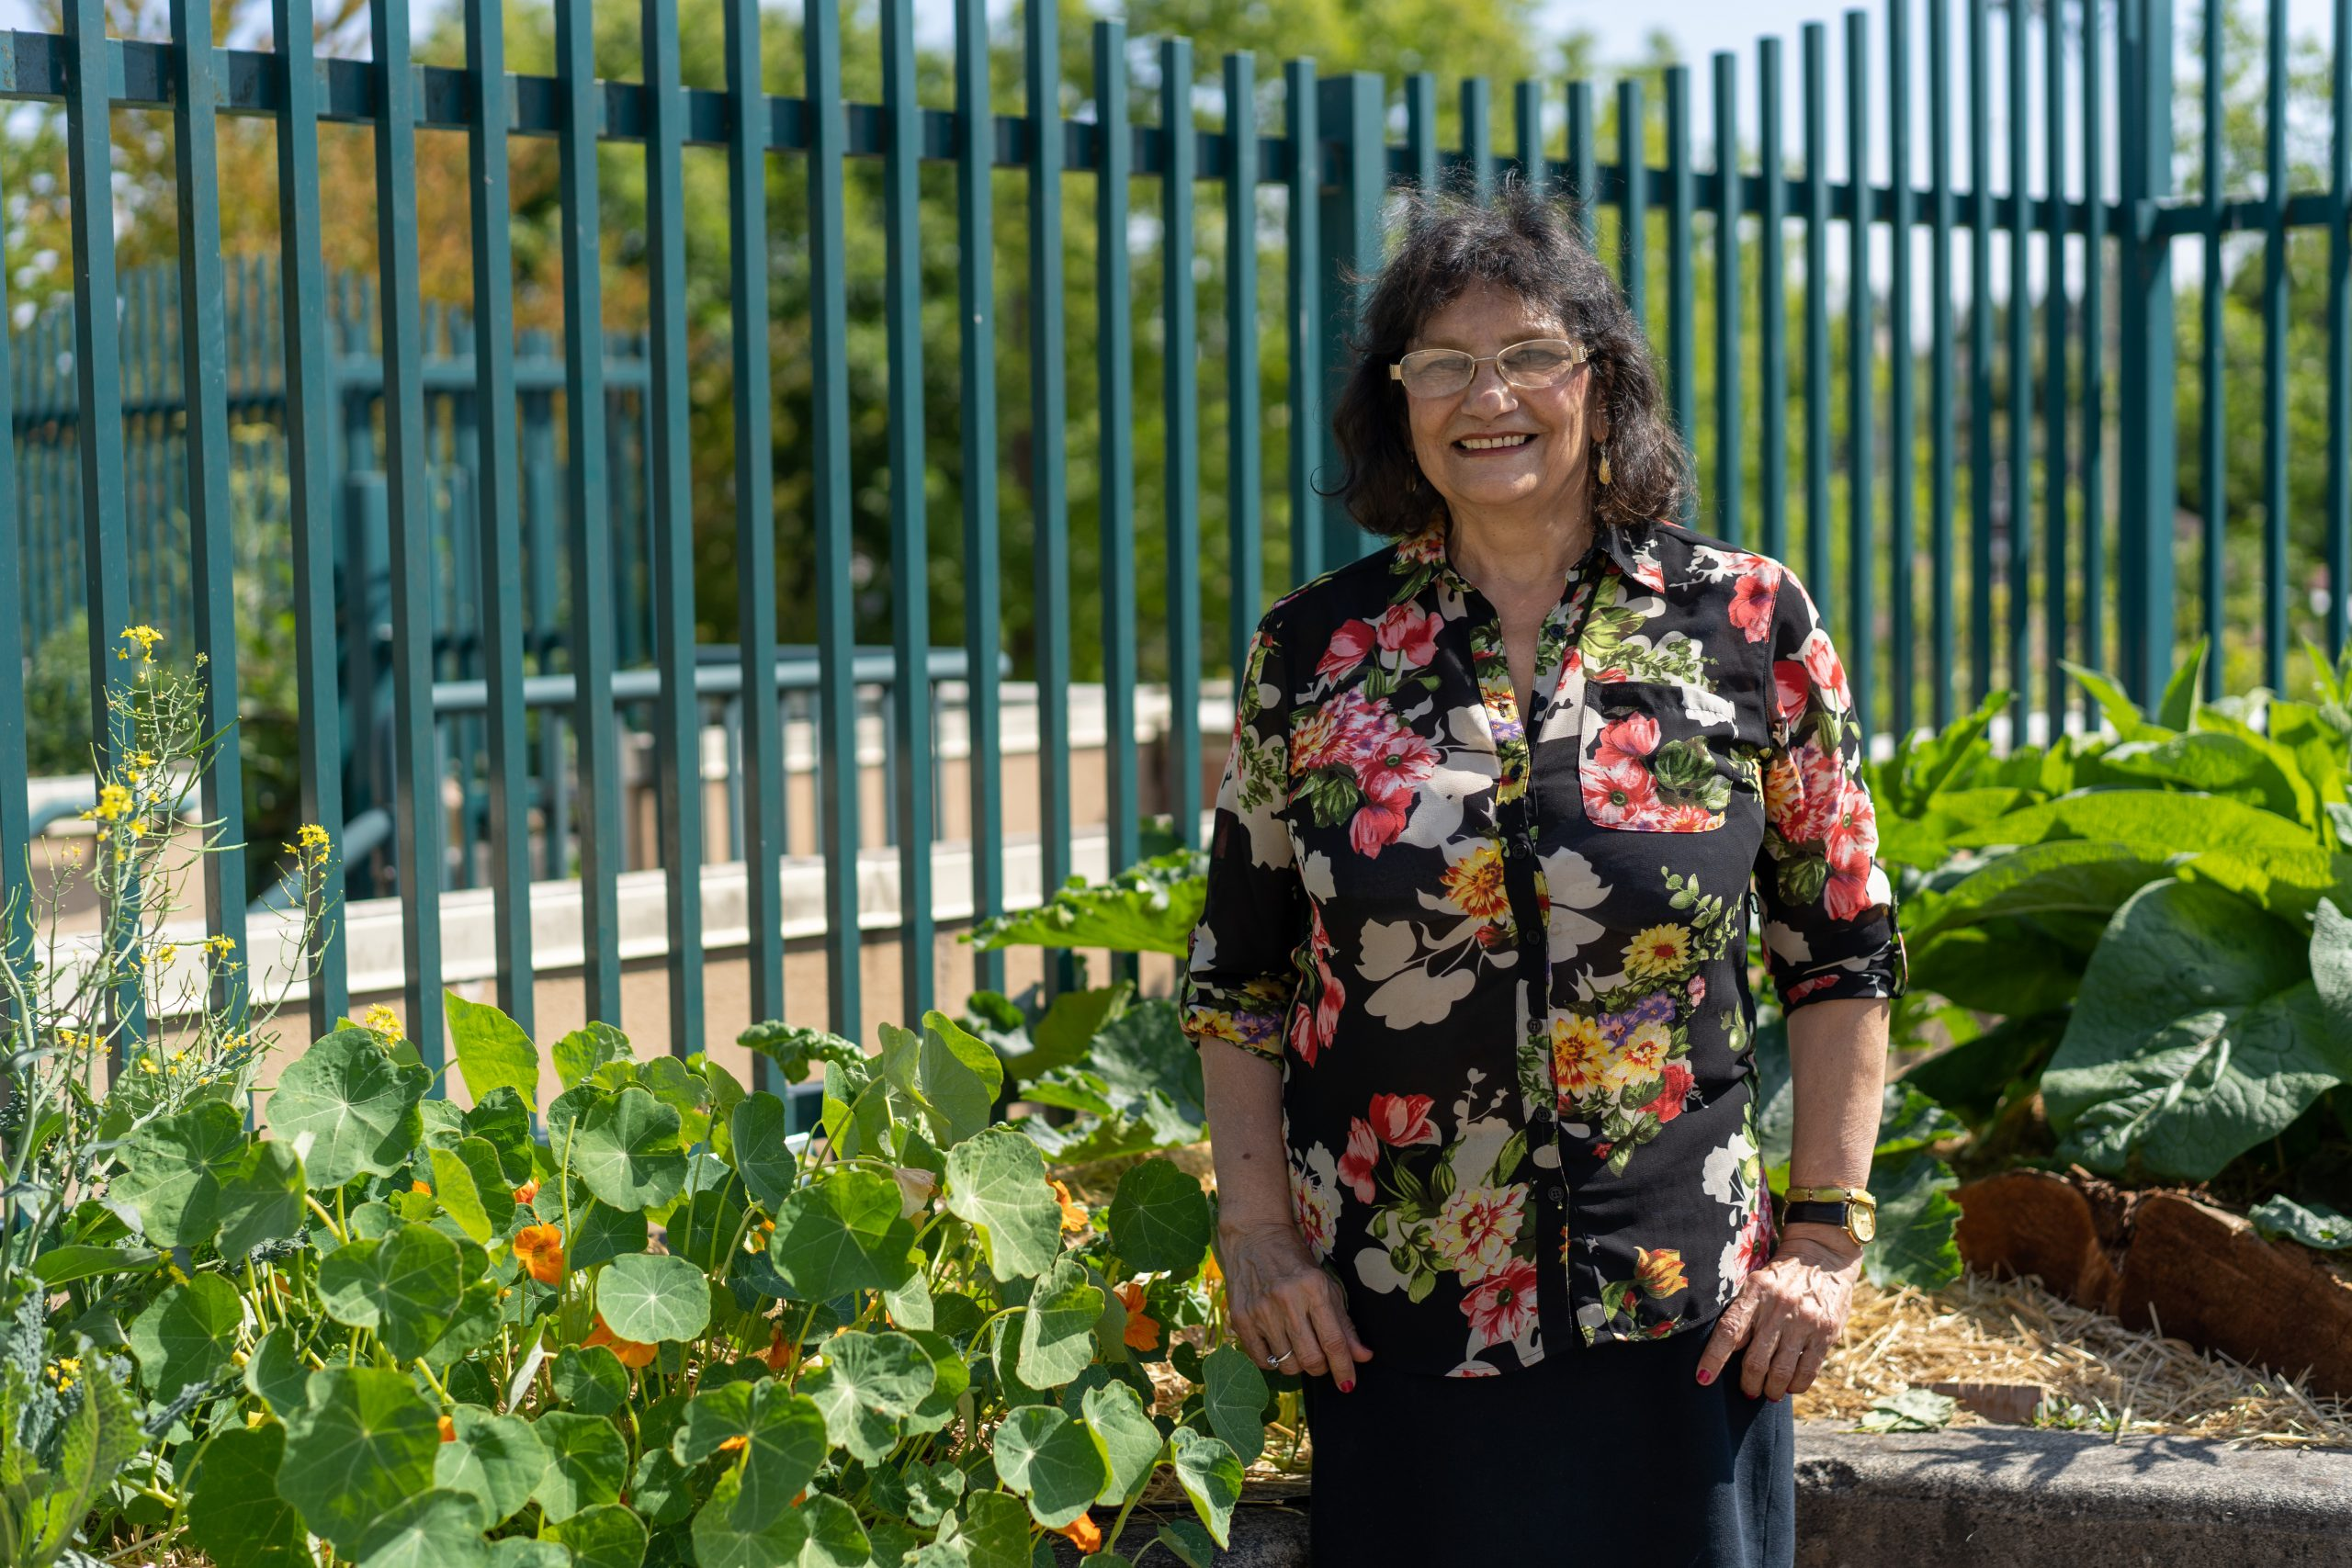 A volunteer standing in the rooftop garden and smiling. She is wearing a black top with red flowers.